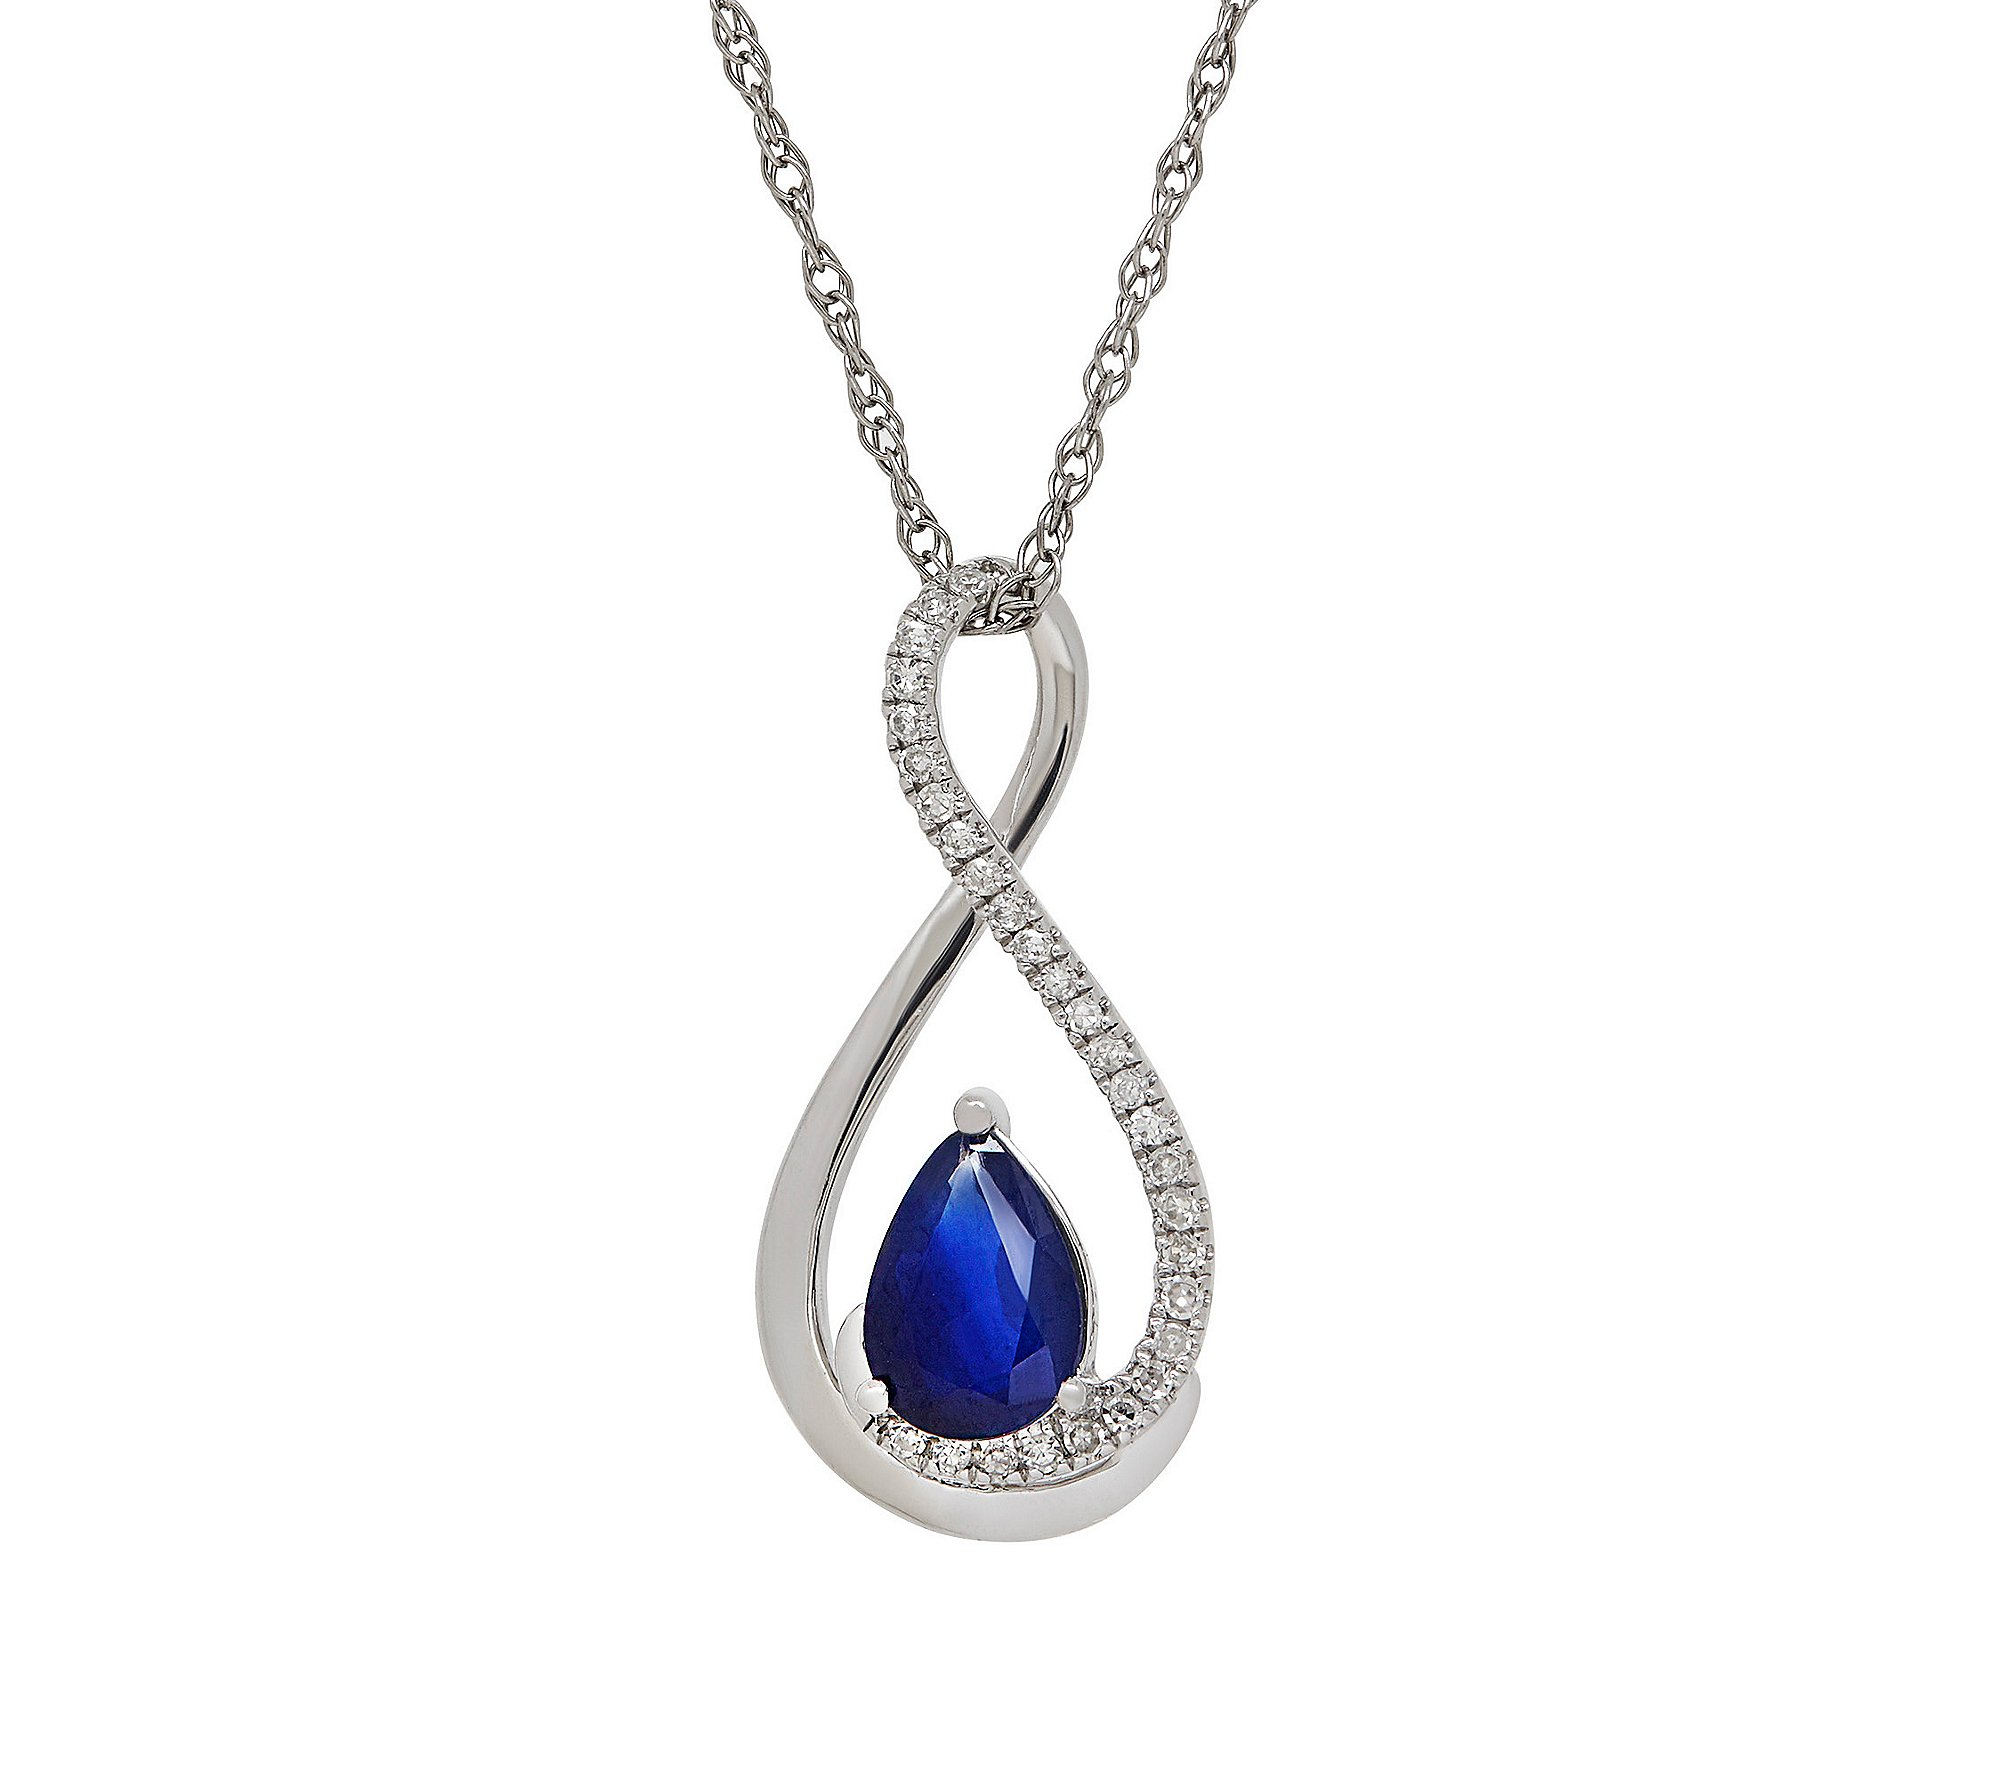 Fine Jewelry 10k White Gold Blue Sapphire Pendant Necklace with 0.08 ct. t.w. Diamond Accent